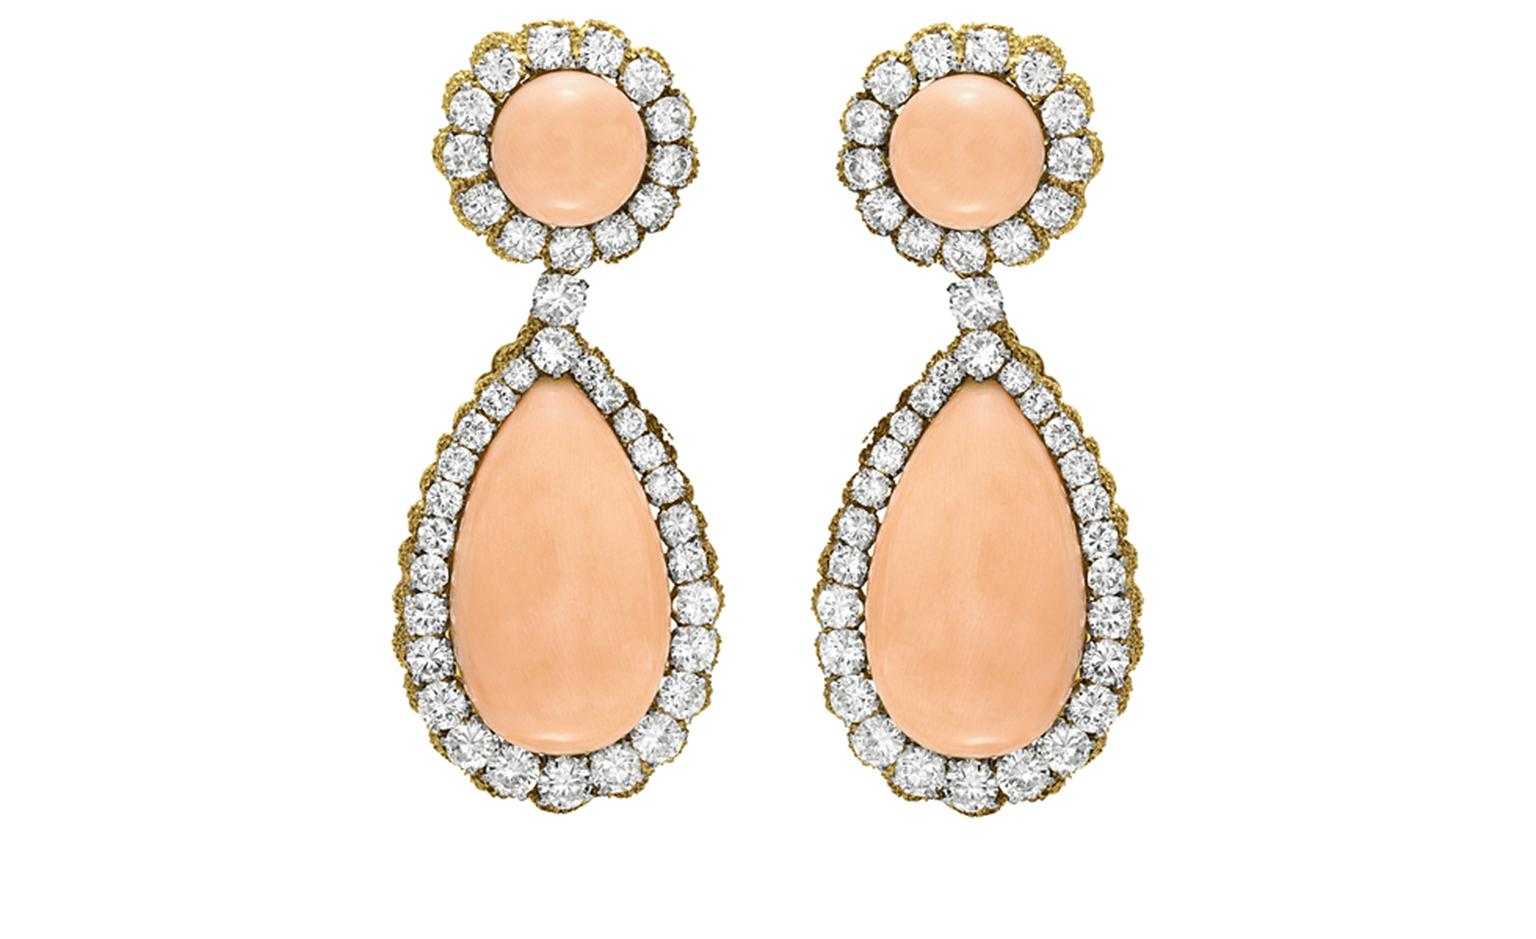 Van Cleef & Arpels. Larmes Coral, Diamond and Yellow Gold ear pendants (1969). © Christie's Images 2011. POA.